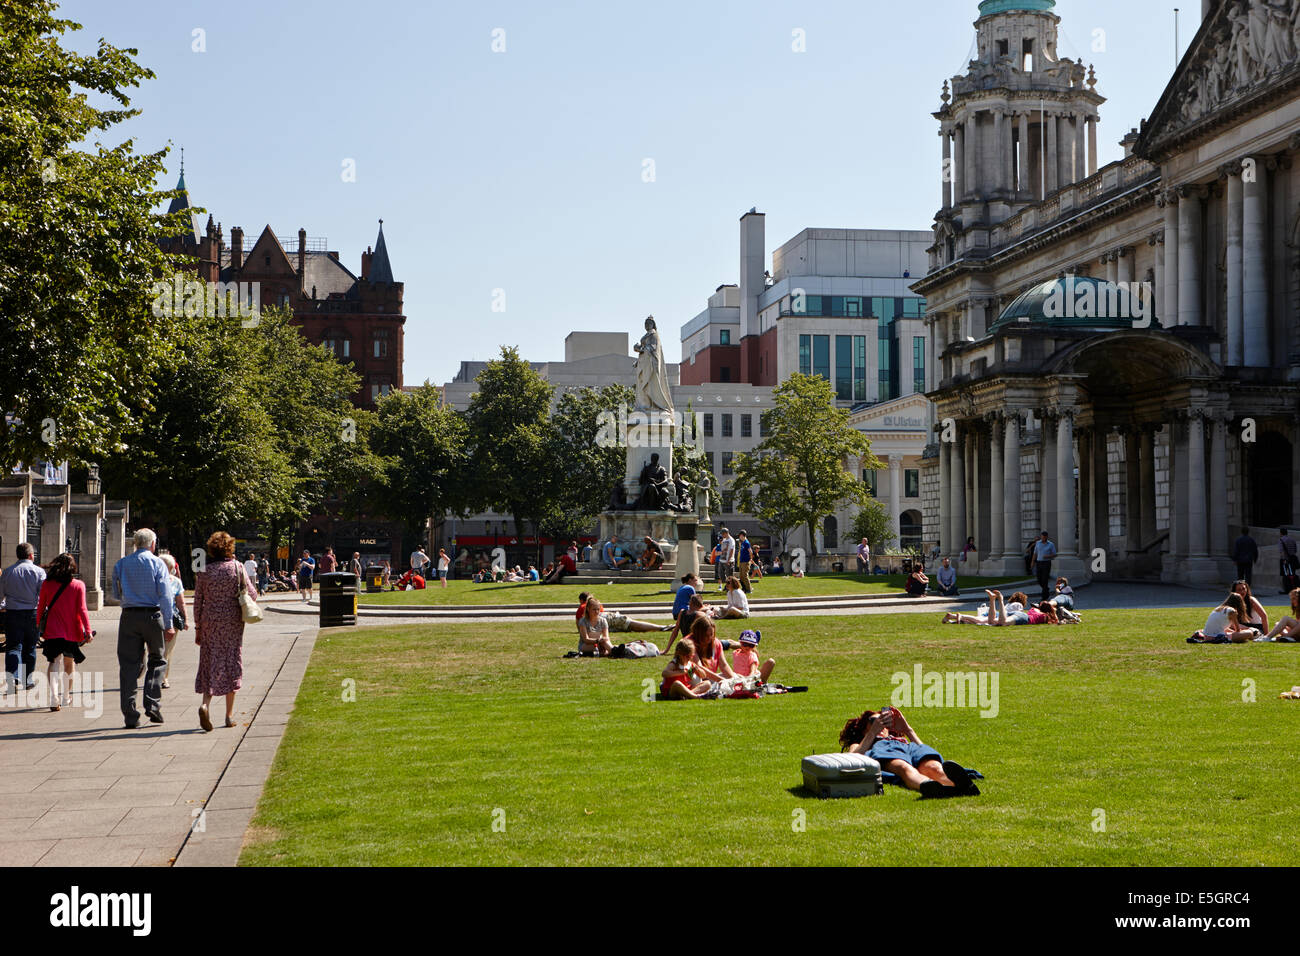 people enjoying hot summers day in the grounds of Belfast city hall in the city centre - Stock Image